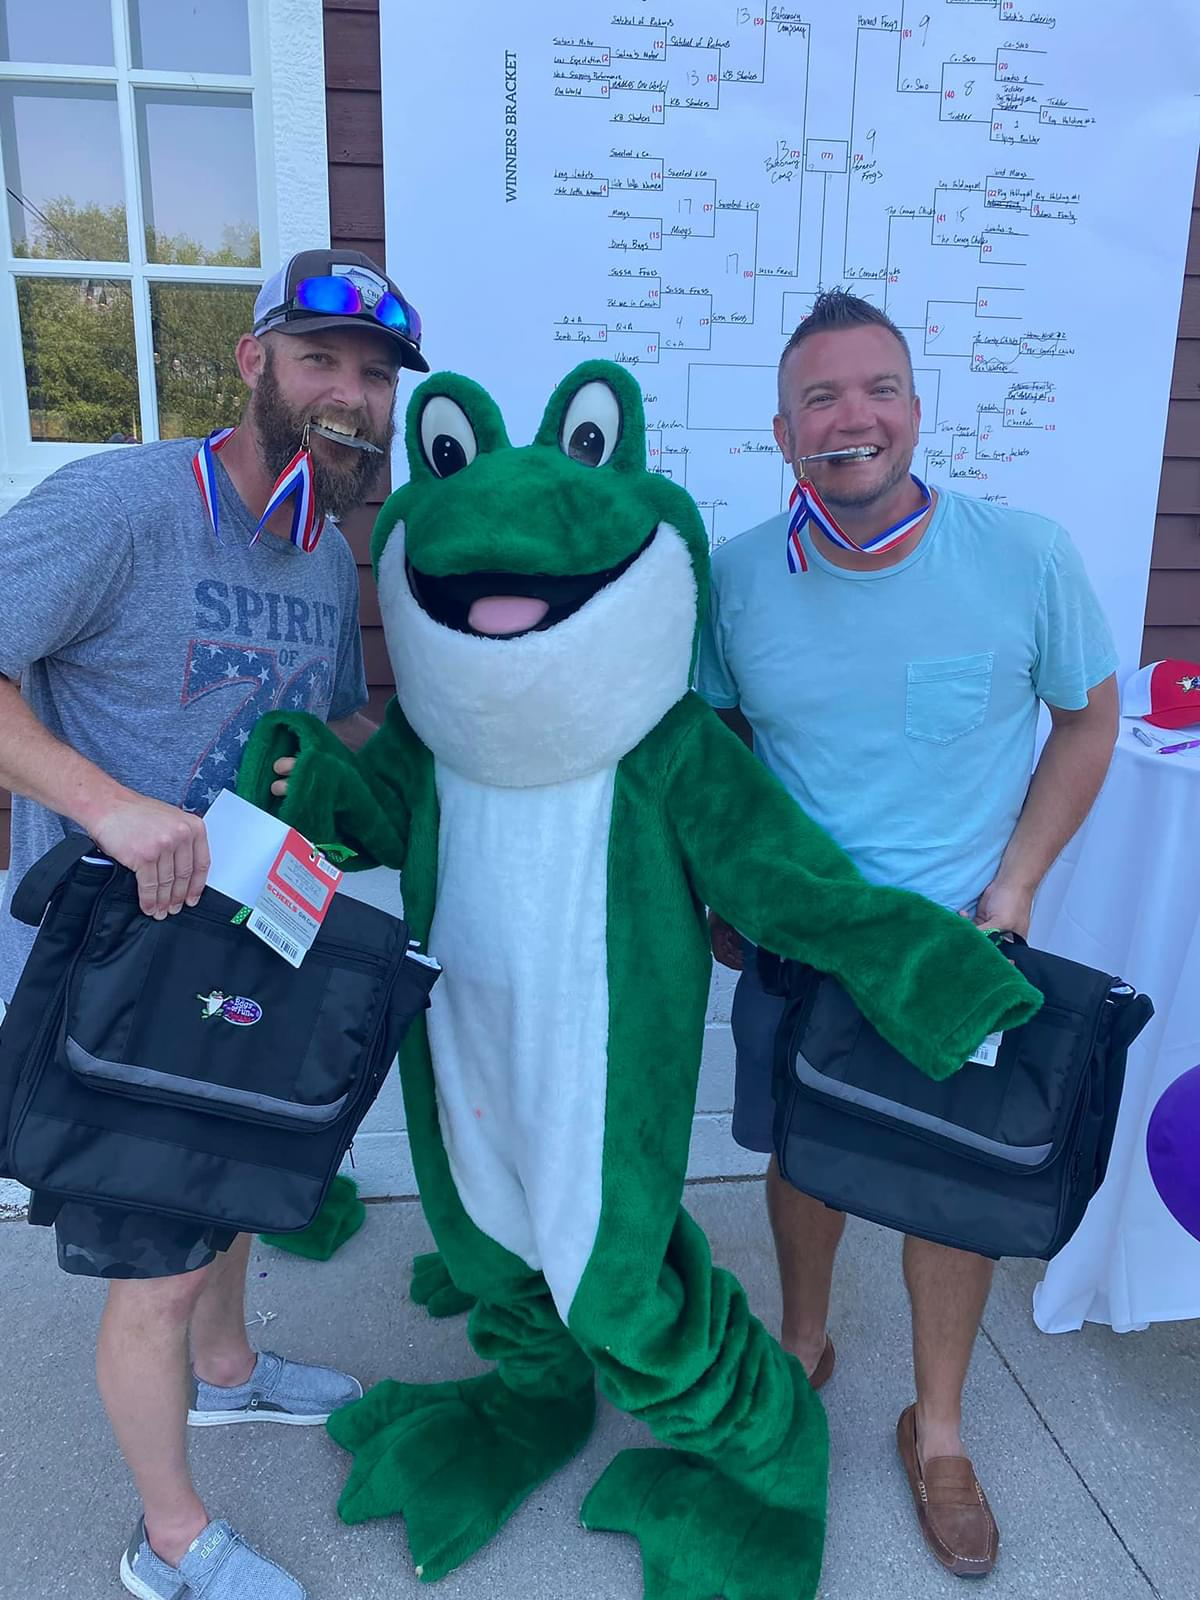 People with the Bags of Fun Frog Mascot